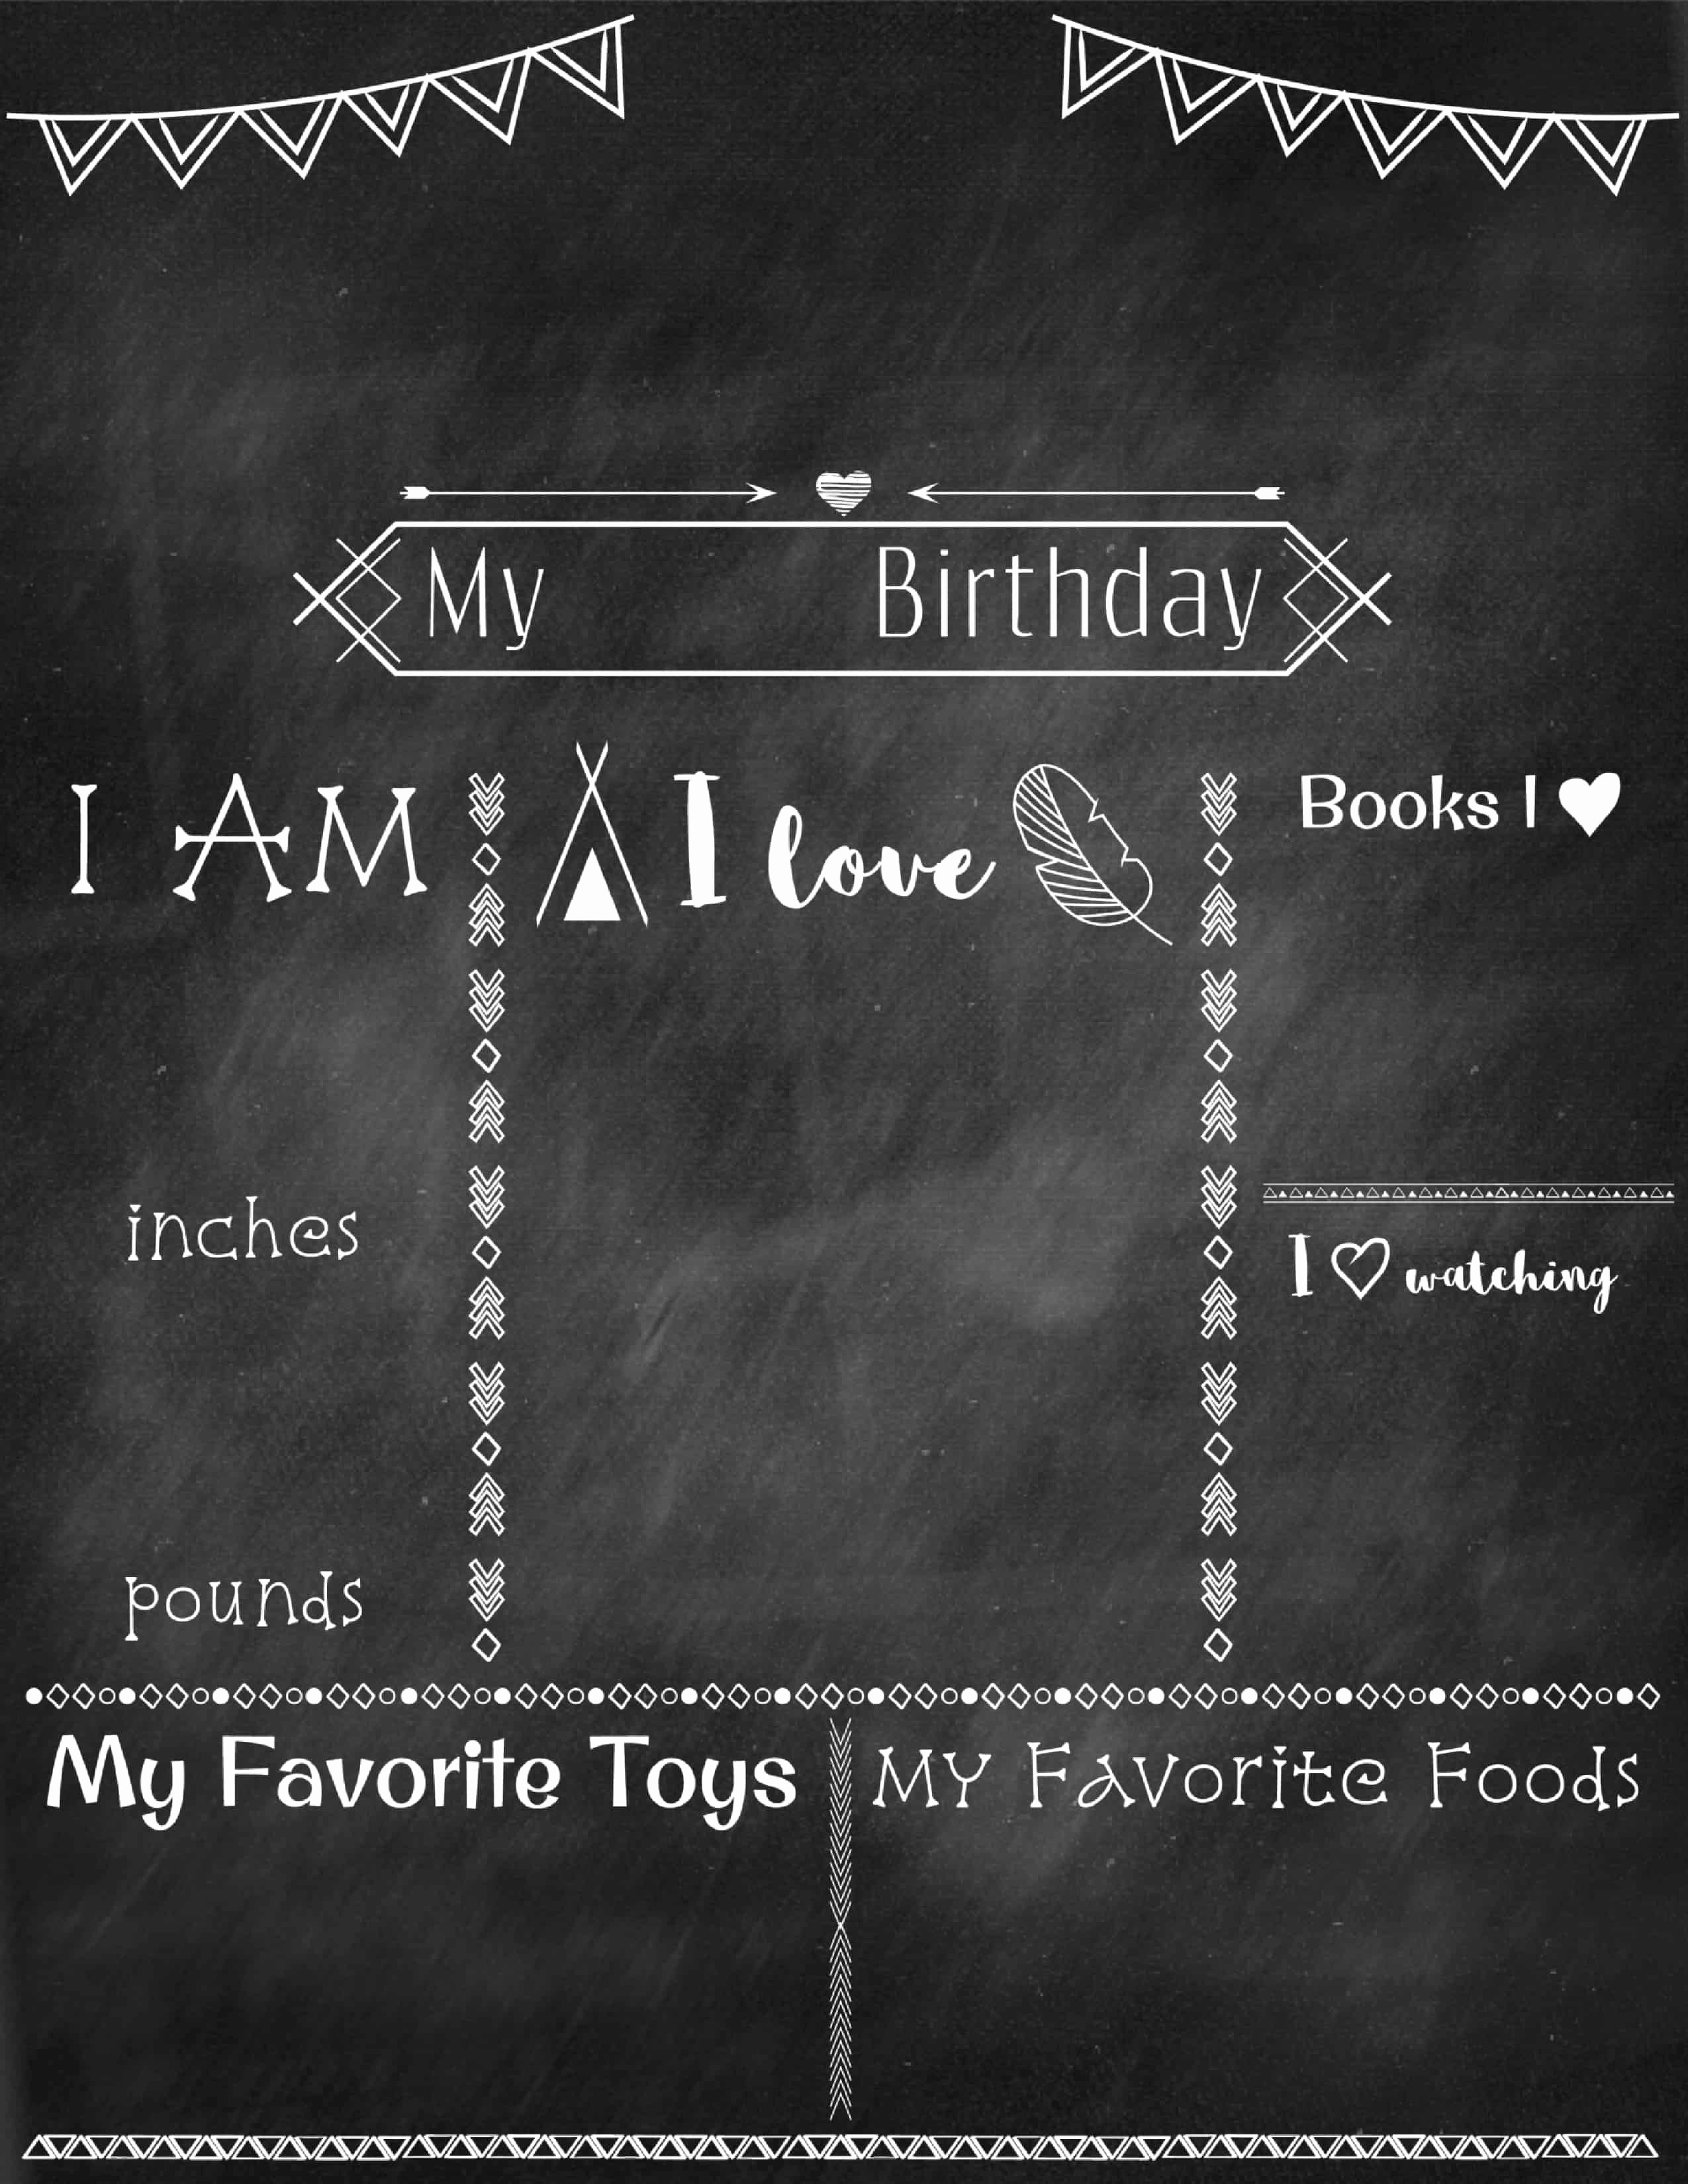 Free Birthday Chalkboard Template Inspirational Birthday Poster Template Free with Step by Step Tutorial